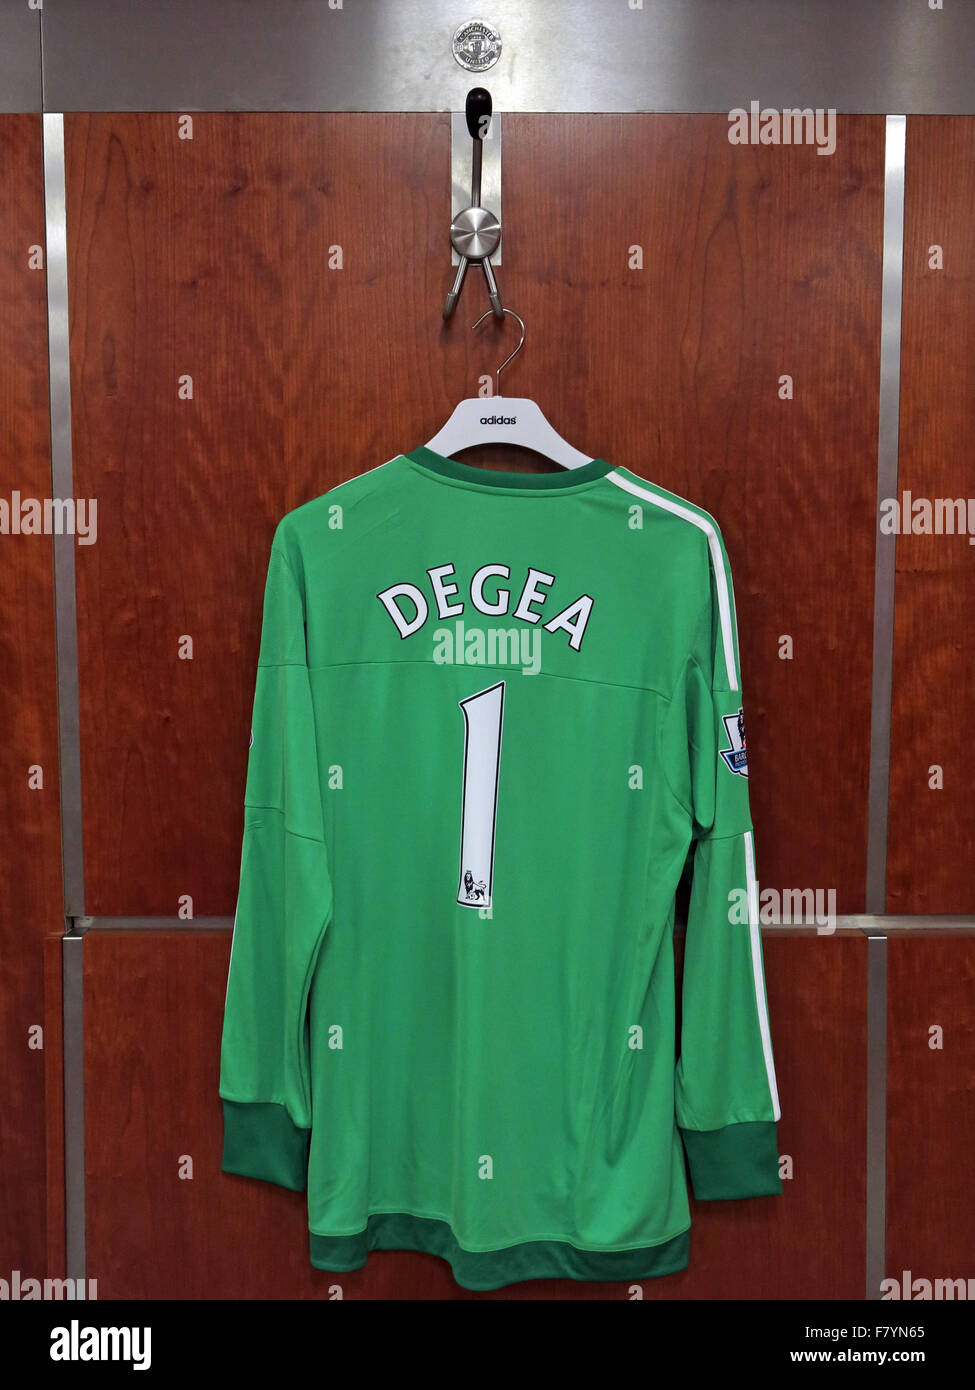 Stretford,England,UK,fifty,50,ManchesterUnited,Football,club,Soccer,FIFA,corruption,Sepp Blatter,Bootroom,English,British,champions,red,reds,Premier,League,Premiership,official,hook,Degea,10,ten,top,goalkeeper,goalie,David,Manchester United,Official Hook,Green Shirt,GoTonySmith,ManchesterUnited,MUFC,Mancester,MU,old,Trafford,theatre,of,dreams,Lancs,Lancashire,RedDevils,Red,Devils,Football,Club,FC,allseater,all-seater,association,away,balls,betting,britain,british,champions,changing,coaches,competition,culture,cups,division,documentary,dressing,england,english,fans,fixtures,game,goals,ground,heritage,history,home,homesoffootball,hooliganism,justice,kick,kick-off,league,managers,midweek,pitch,players,police,premier,promotion,referees,regulations,relegation,results,room,roots,rules,saturday,saturdays,scorers,season,seated,seater,seating,shinpads,shirt,shirts,sizes,sky,skysports,soccer,social,socks,sponsors,sport,stadia,stadium,standing,sundays,sunday,system,tables,team,terraces,tradition,trainers,Adidas,Puma,Buy Pictures of,Buy Images Of,Old Trafford,Theatre of Dreams,Theater of dreams,Red Devils